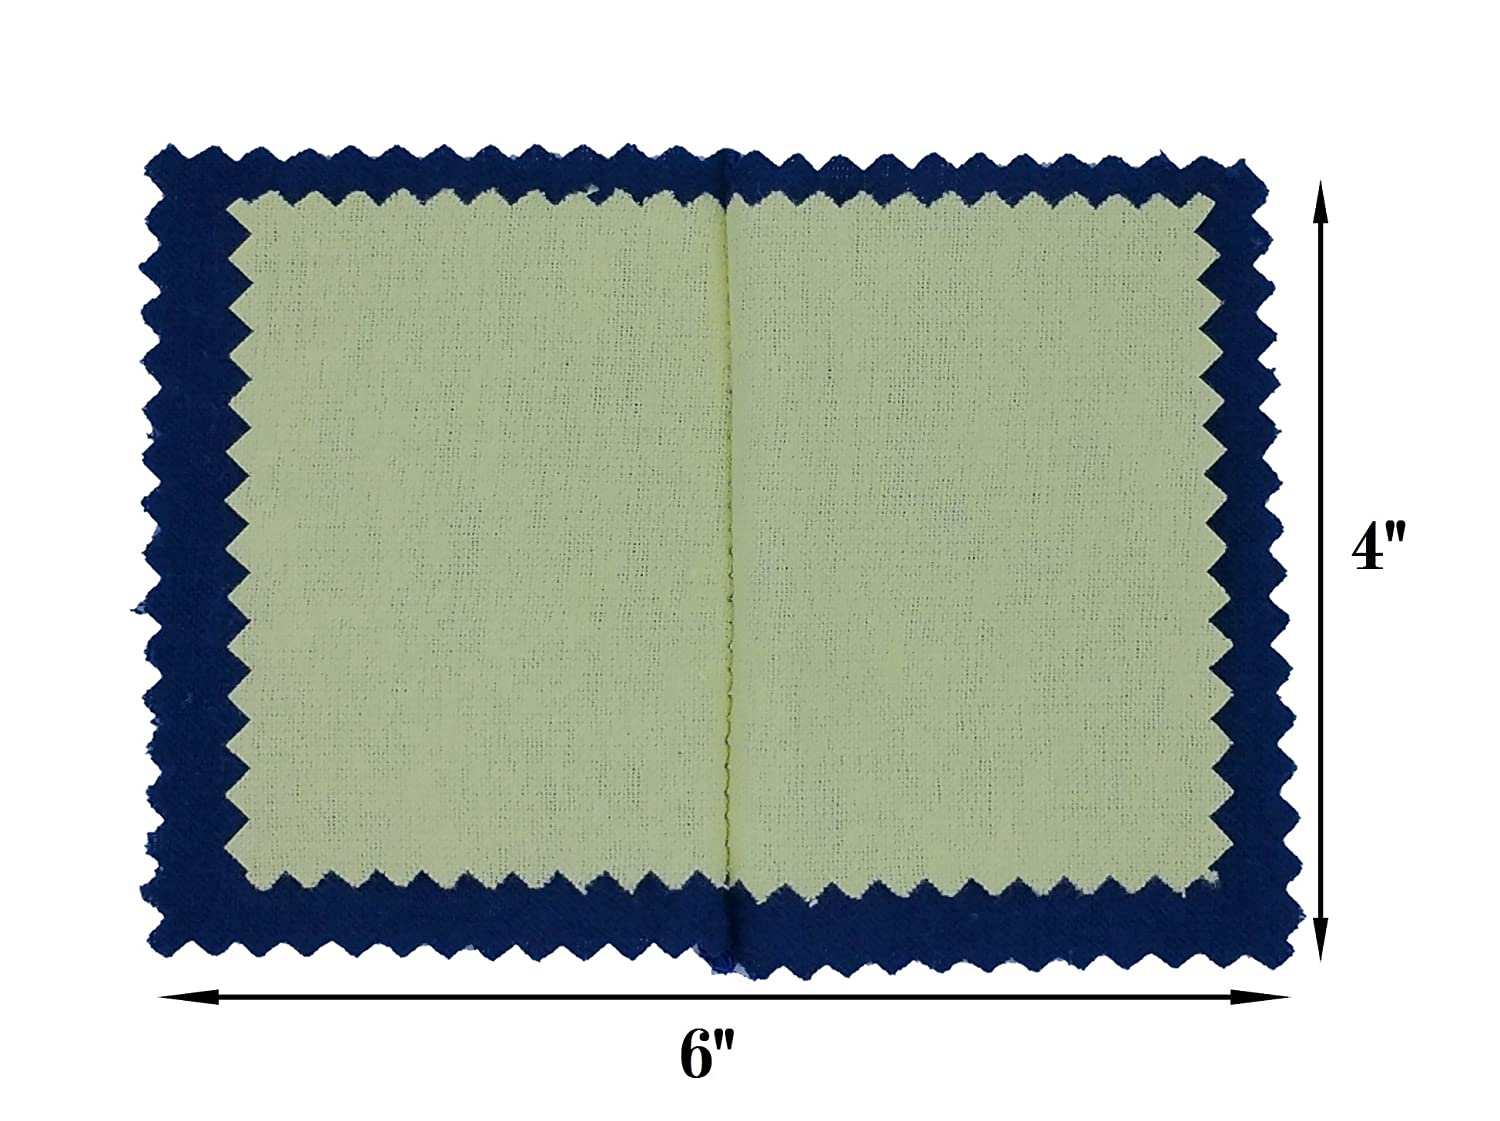 2-Pack New Polishing Cloth for Silver, Gold, Brass /& Most other Metal, Various Sizes available by 888 Display® 888 Display USA